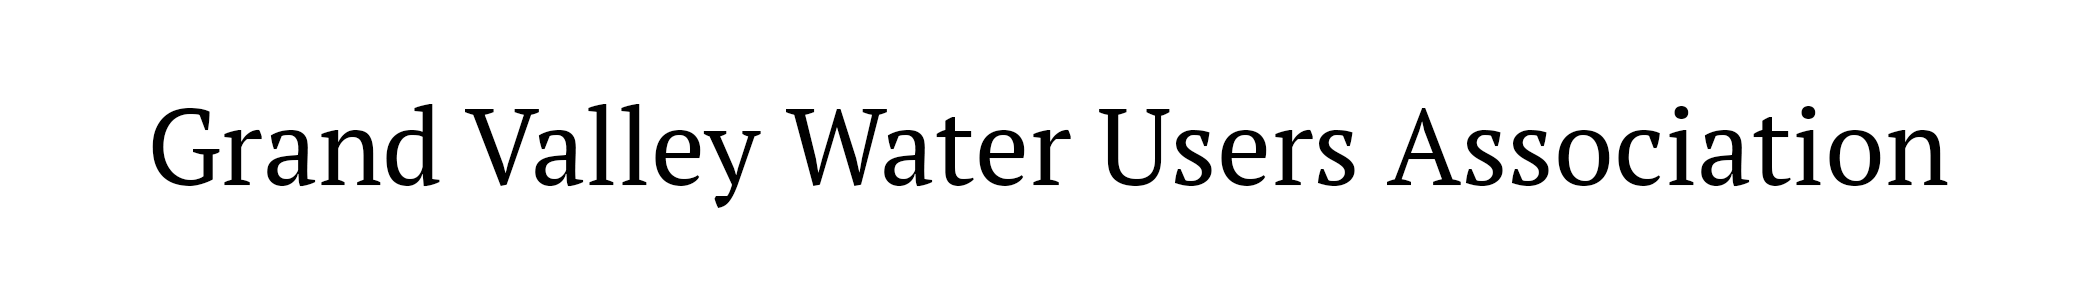 Grand Valley Water Users Association